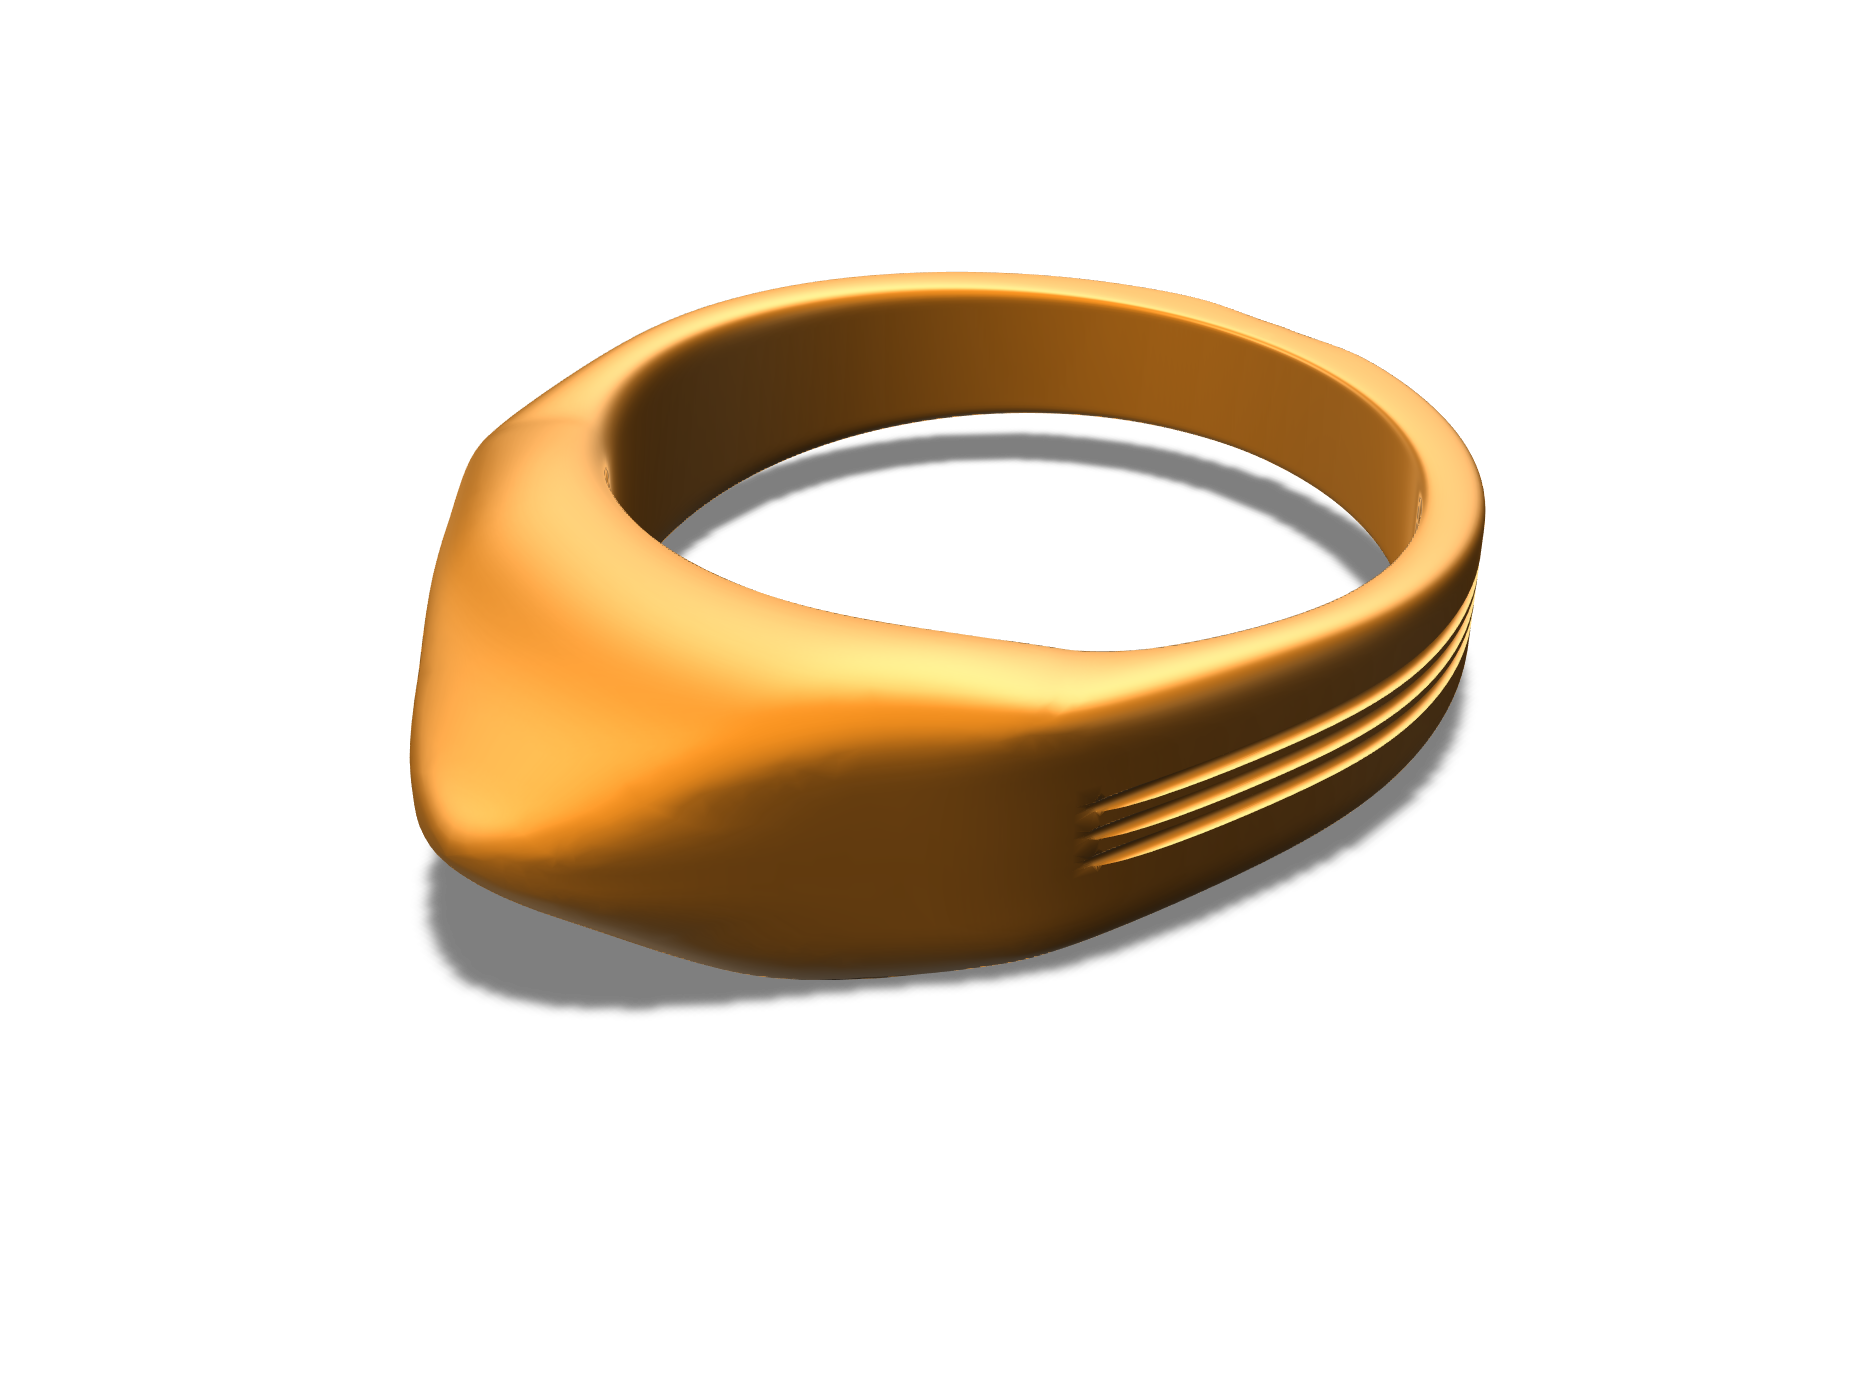 ring 1 - 3D design by Becky Kartage on Jan 18, 2018